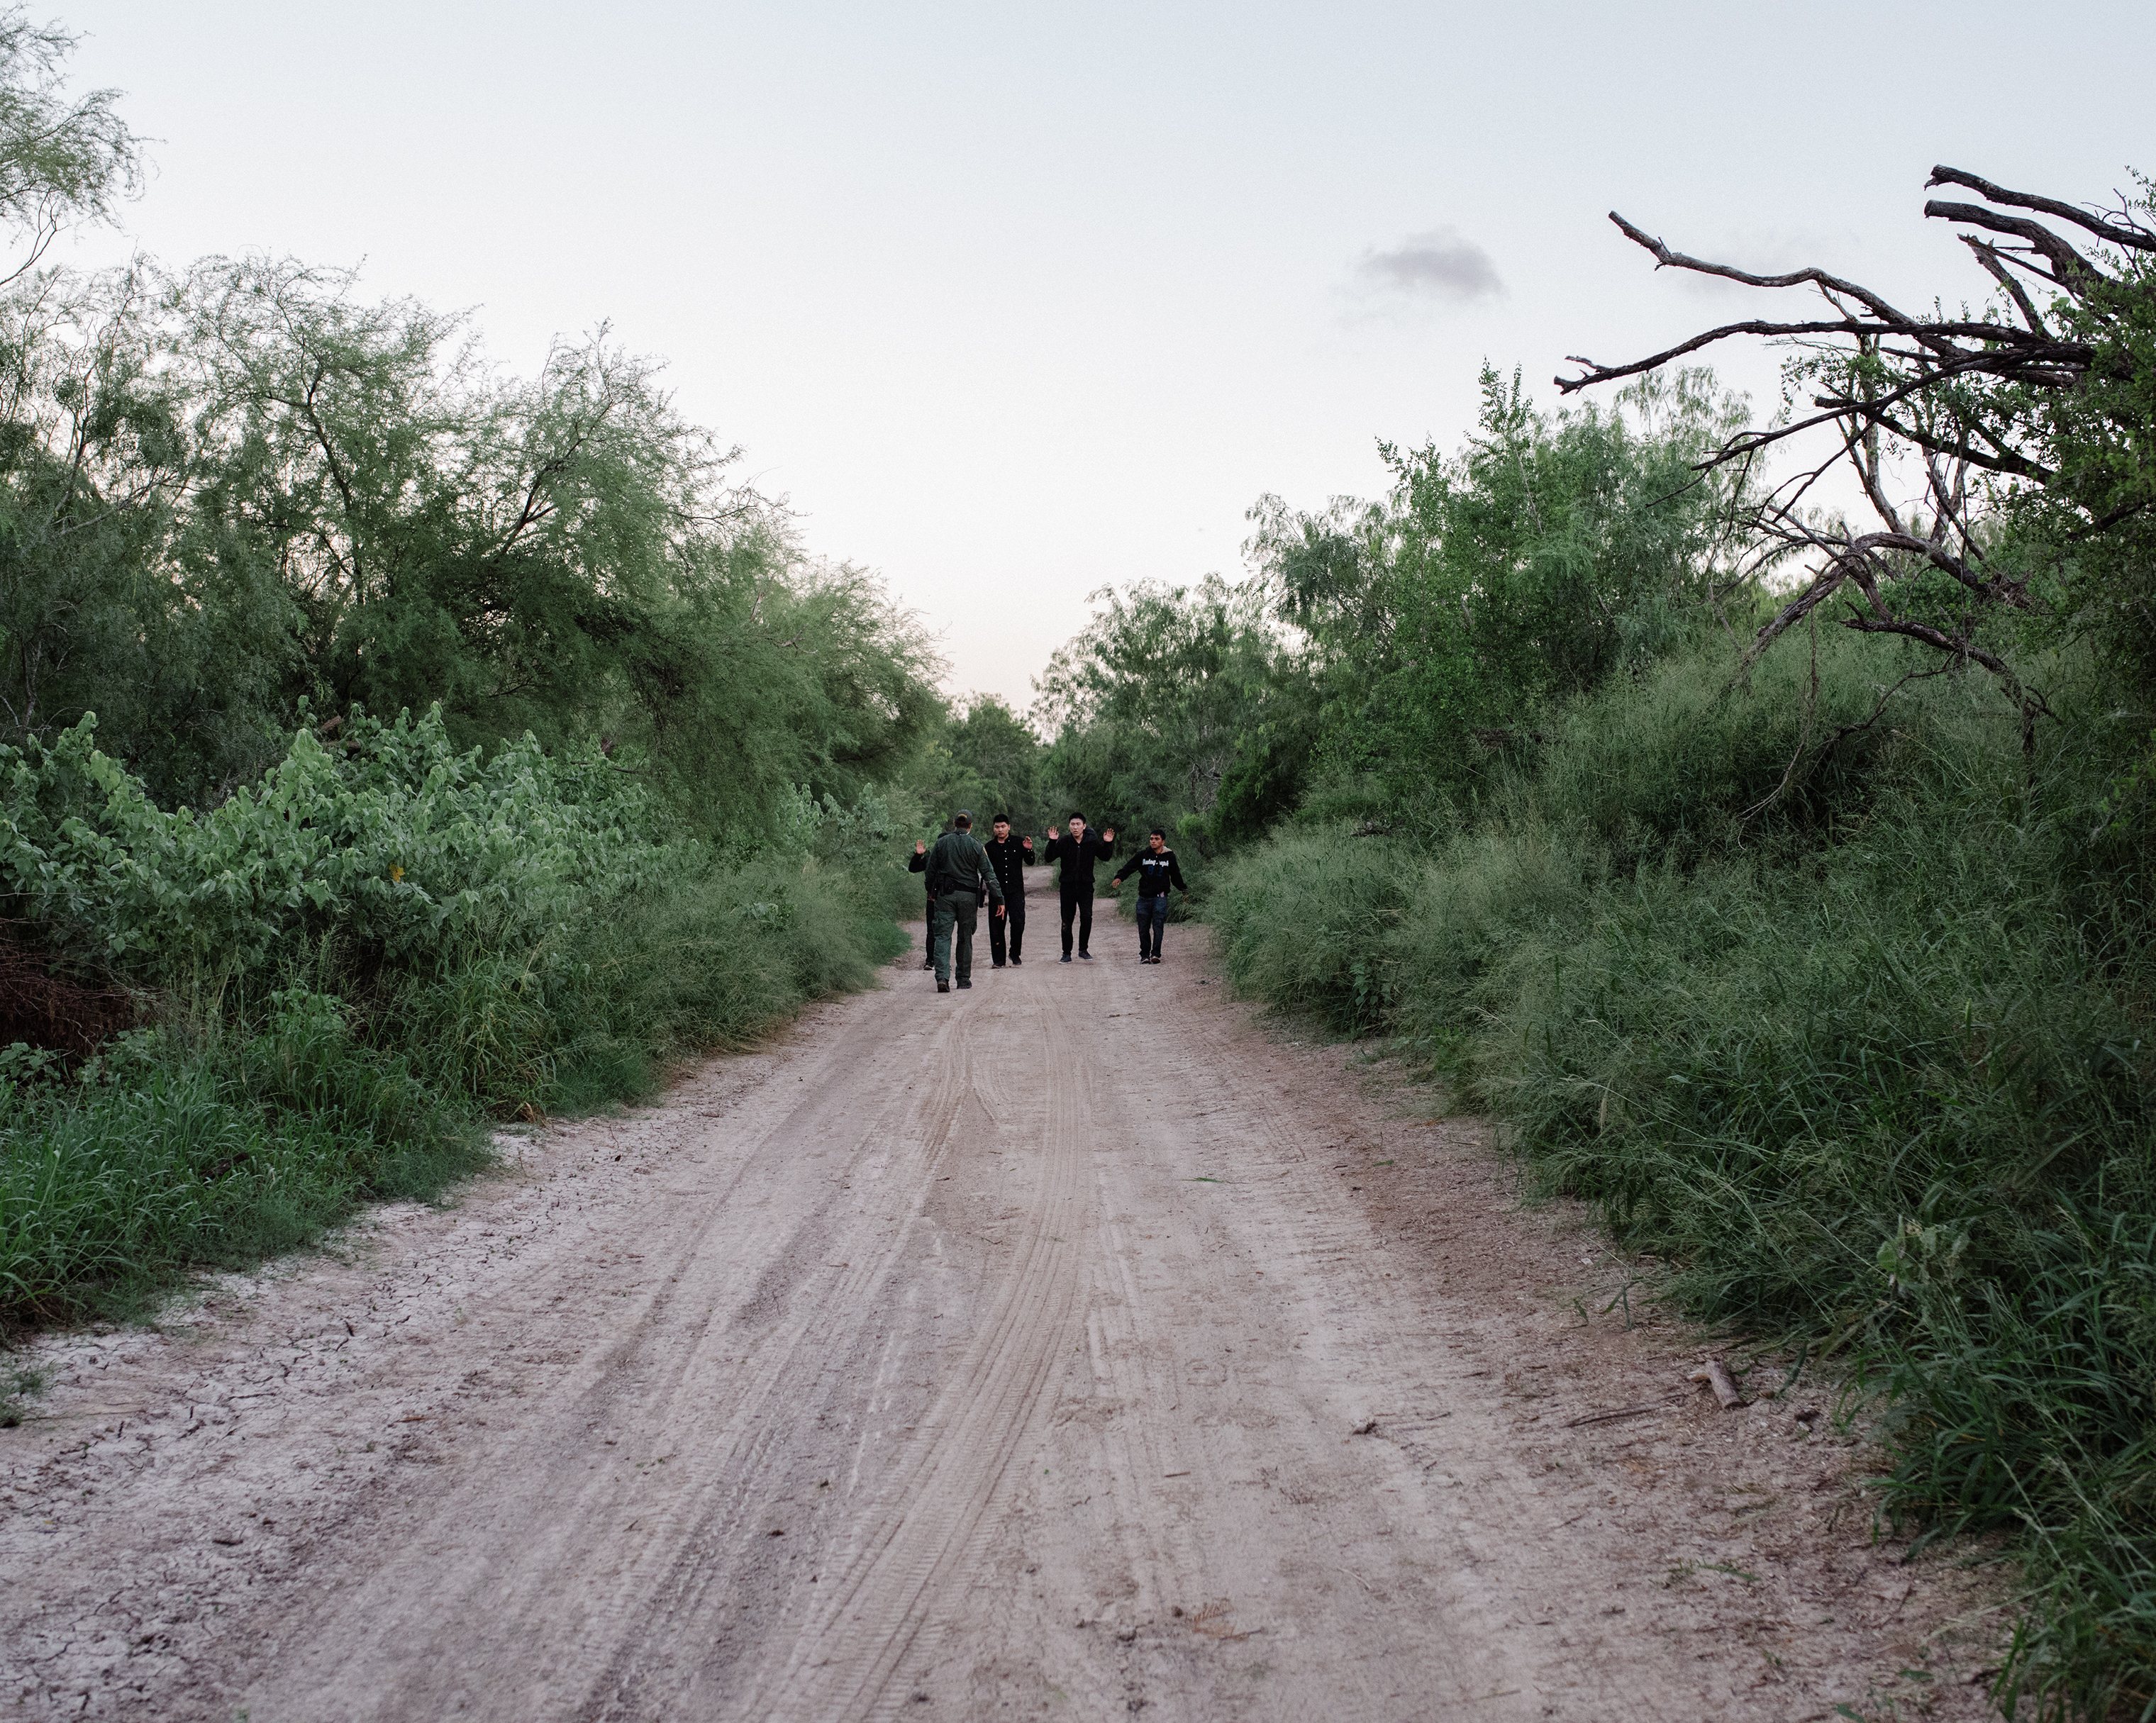 Migrants who crossed the Rio Grande into McAllen are approached by a border officer on Sept. 25.